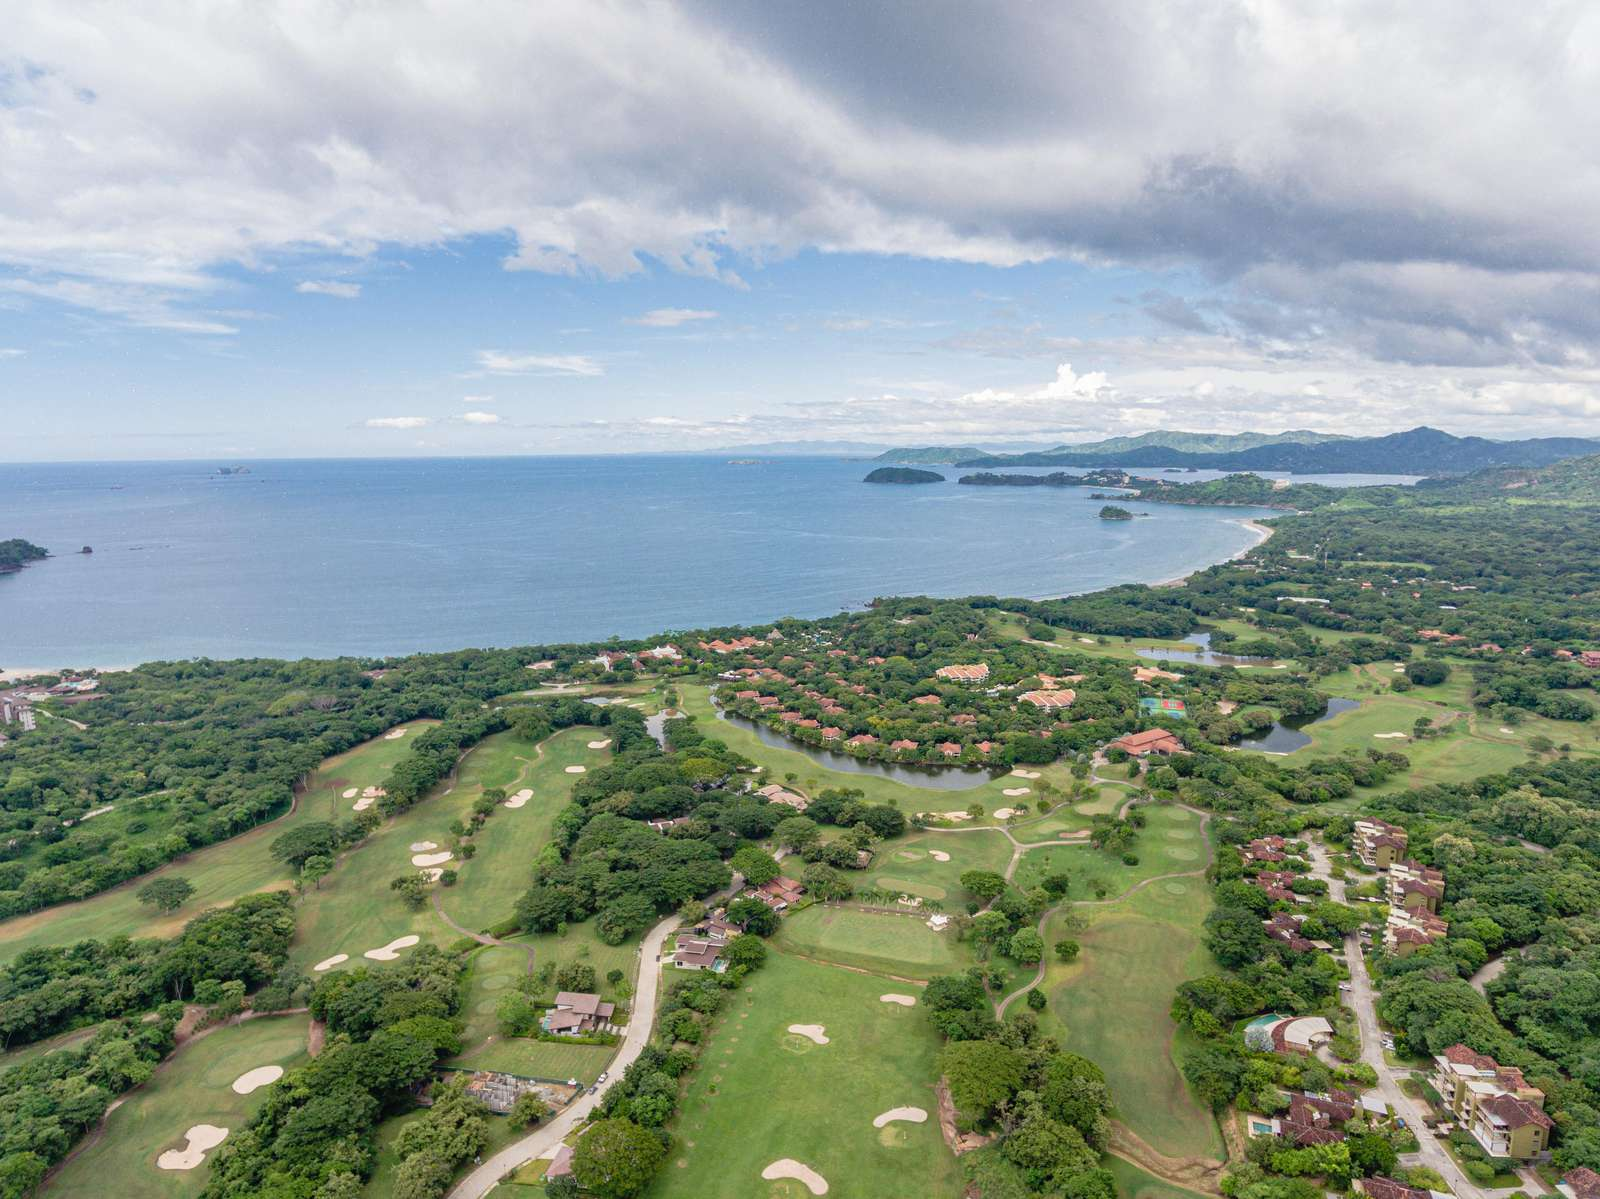 Aerial view of Reserva conchal 2,300 acre golf and resort community